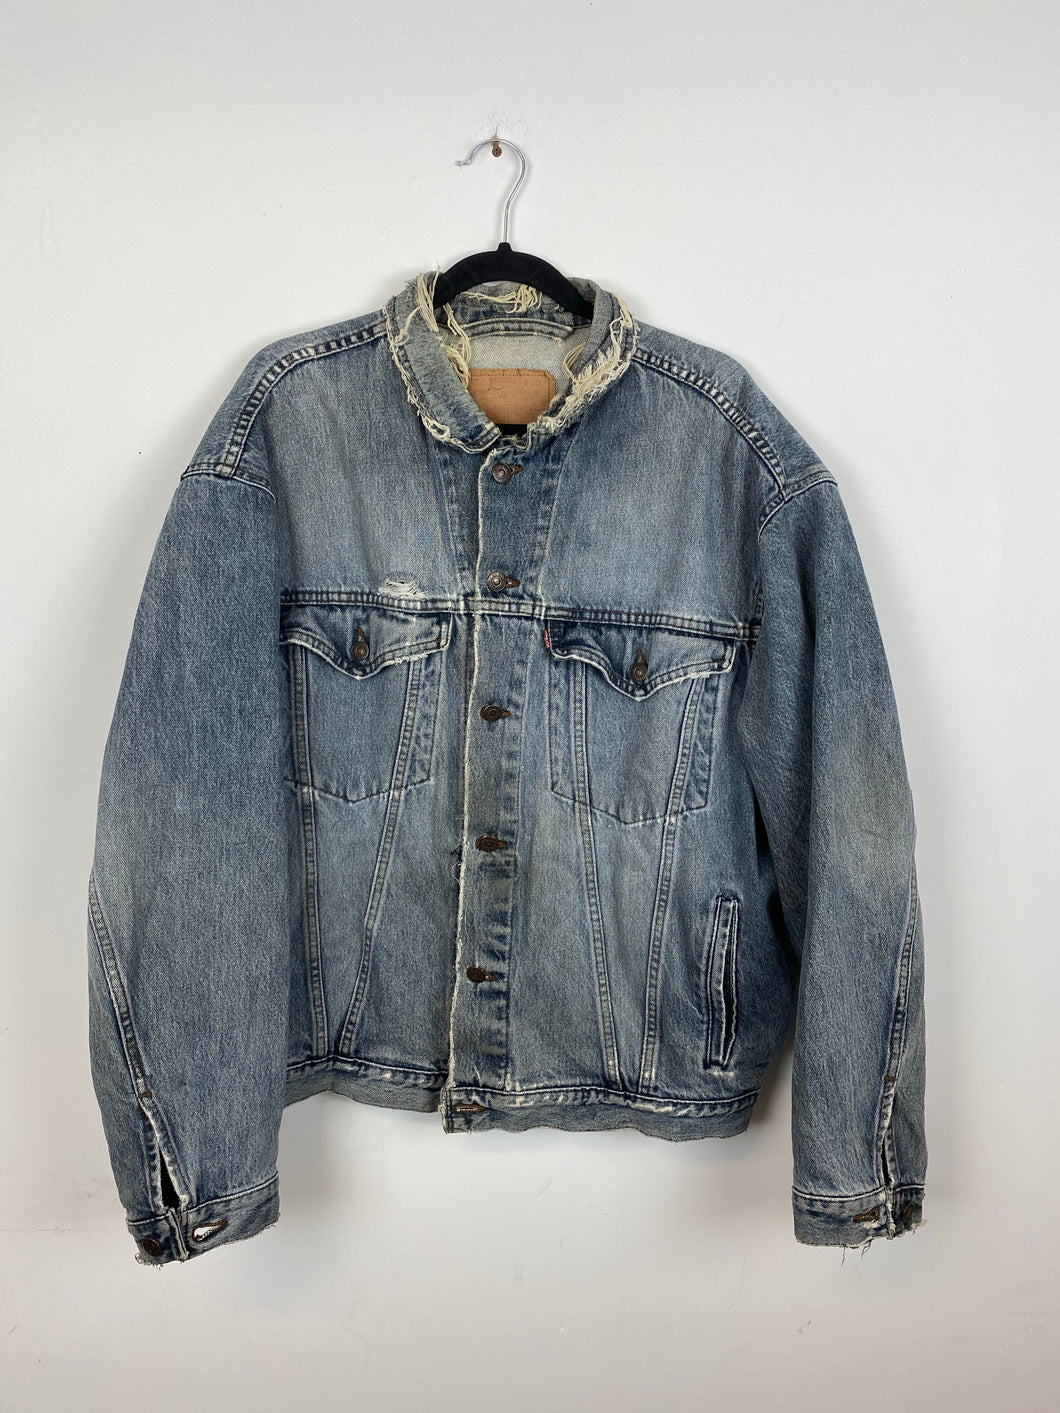 90s distressed Levi's denim jacket